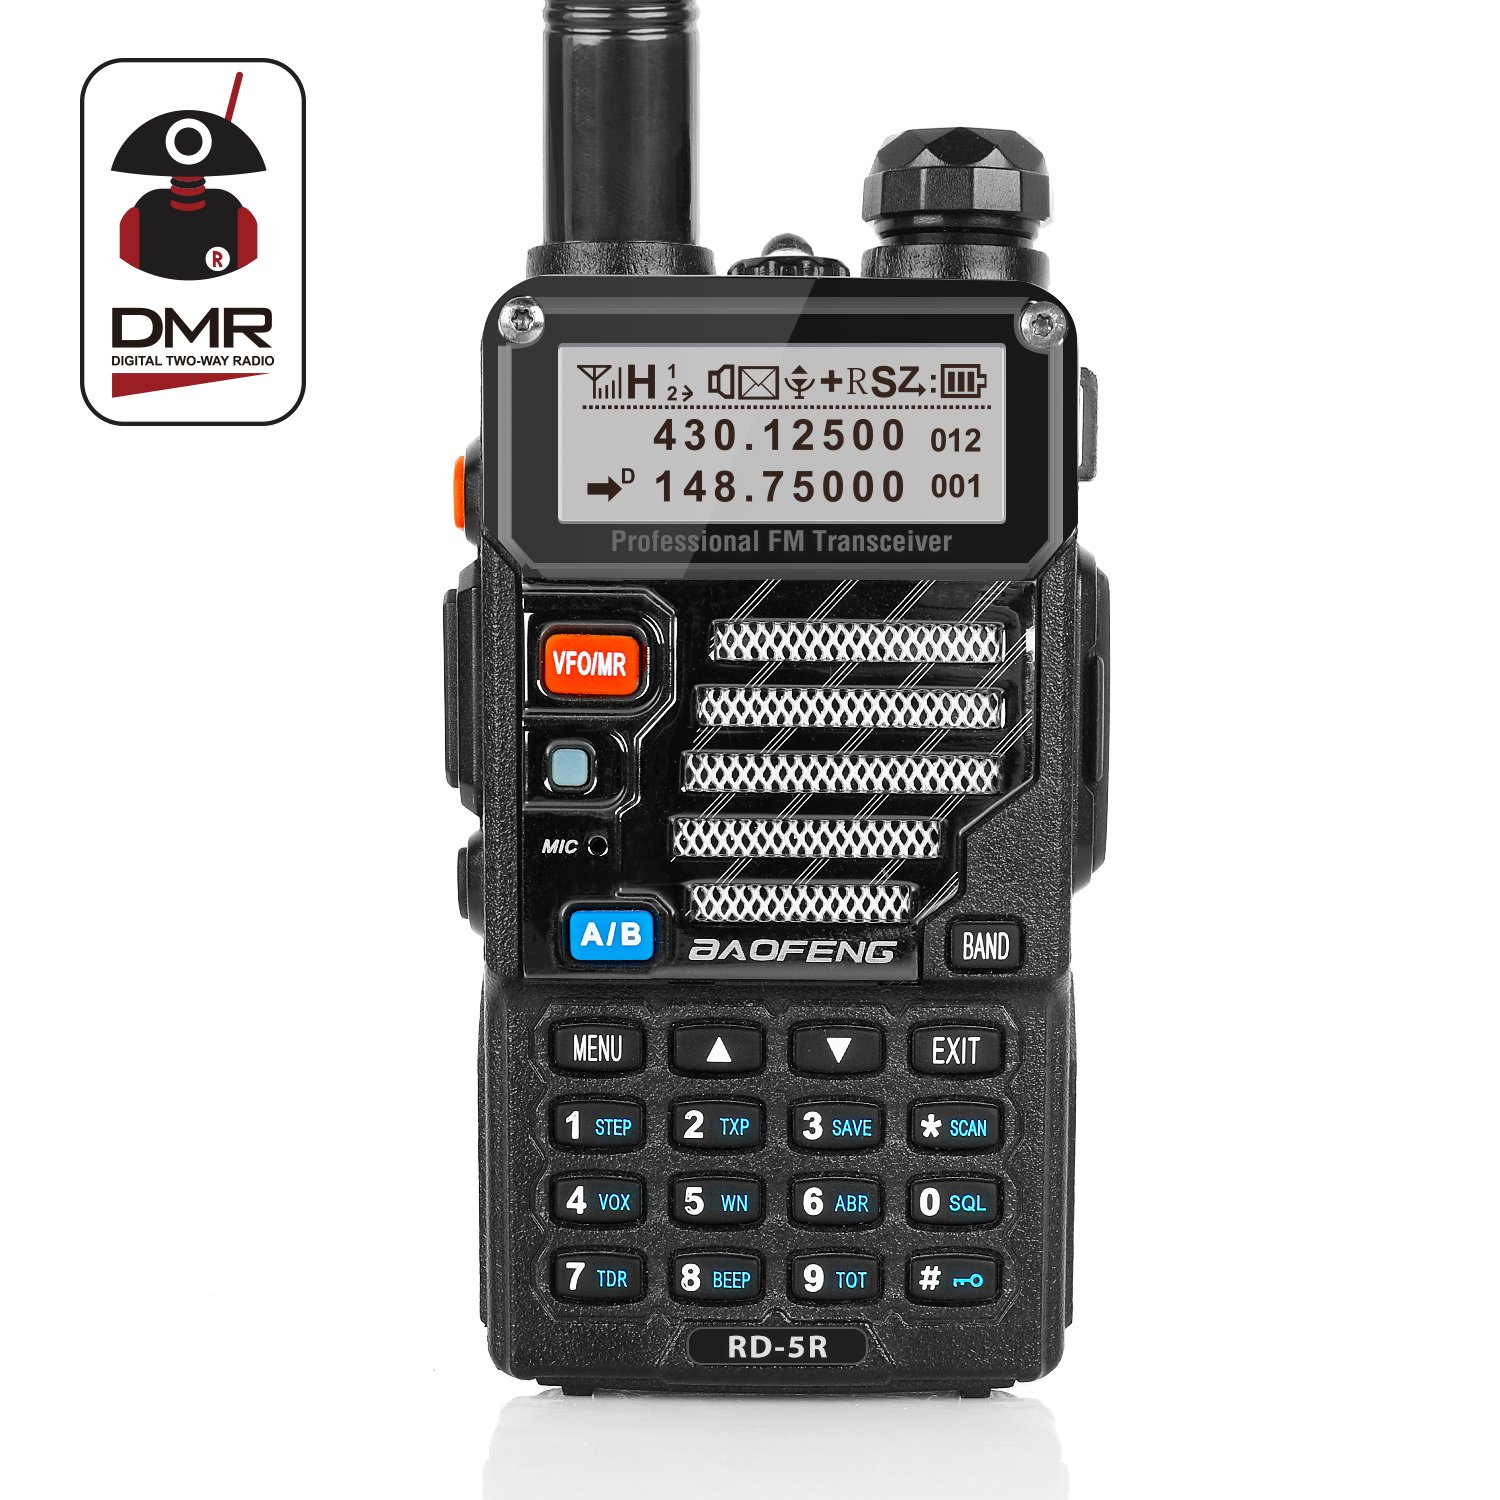 Radioddity x Baofeng RD-5R DMR Ham Amateur Two Way Radio, 136-174/400-470MHz Dual Band Dual Time Slot Walkie Talkie 1024 Channels Tier I & II Compatible with MOTOTRBO, Free Programming Cable